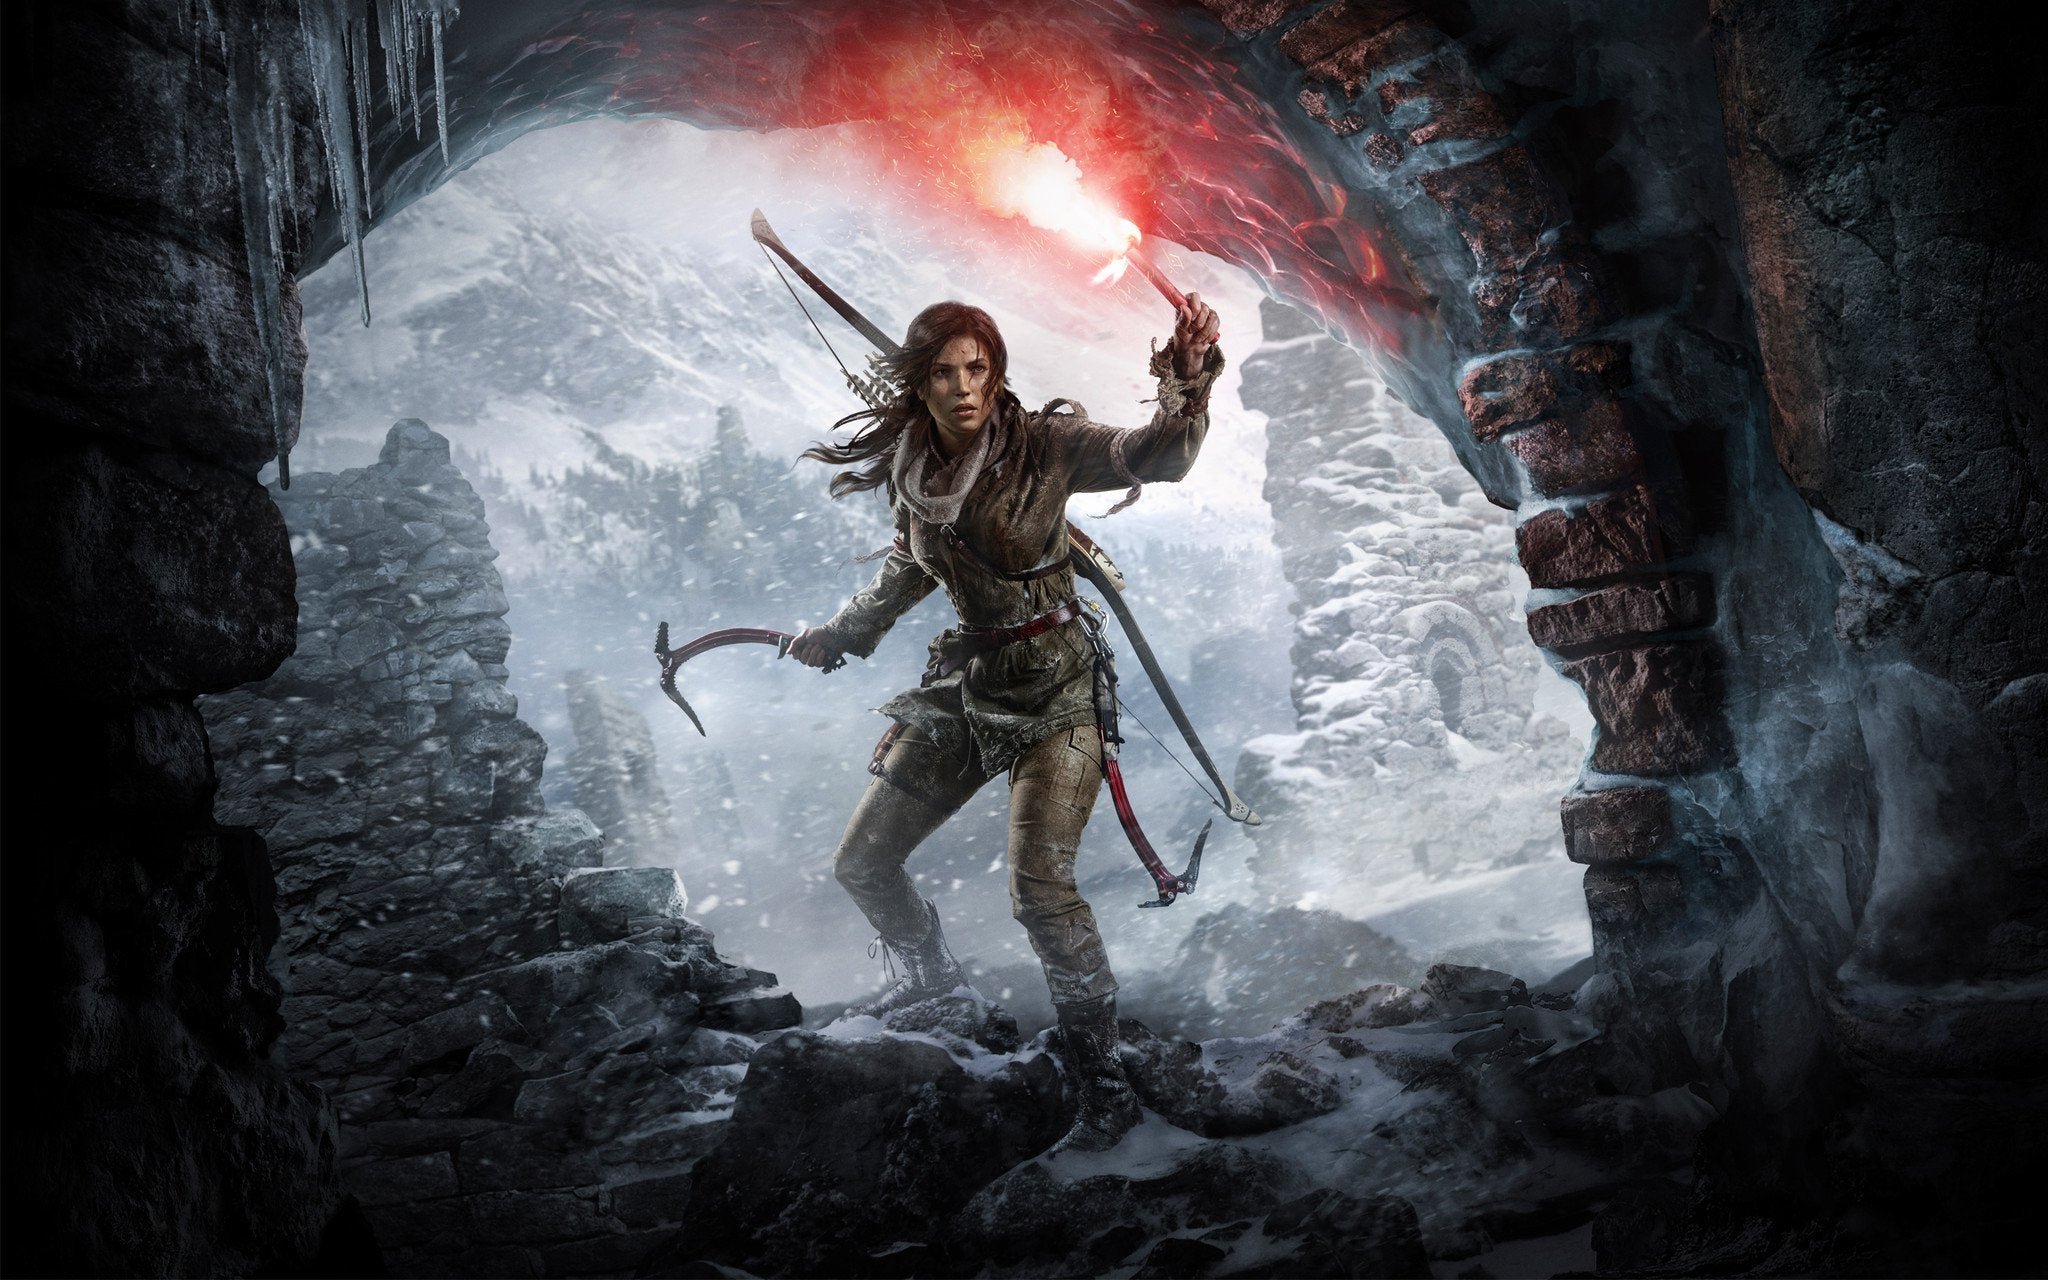 2015 Rise Of The Tomb Raider Game Silk Wall Art Poster Print - 24x36 inch (60x90cm)